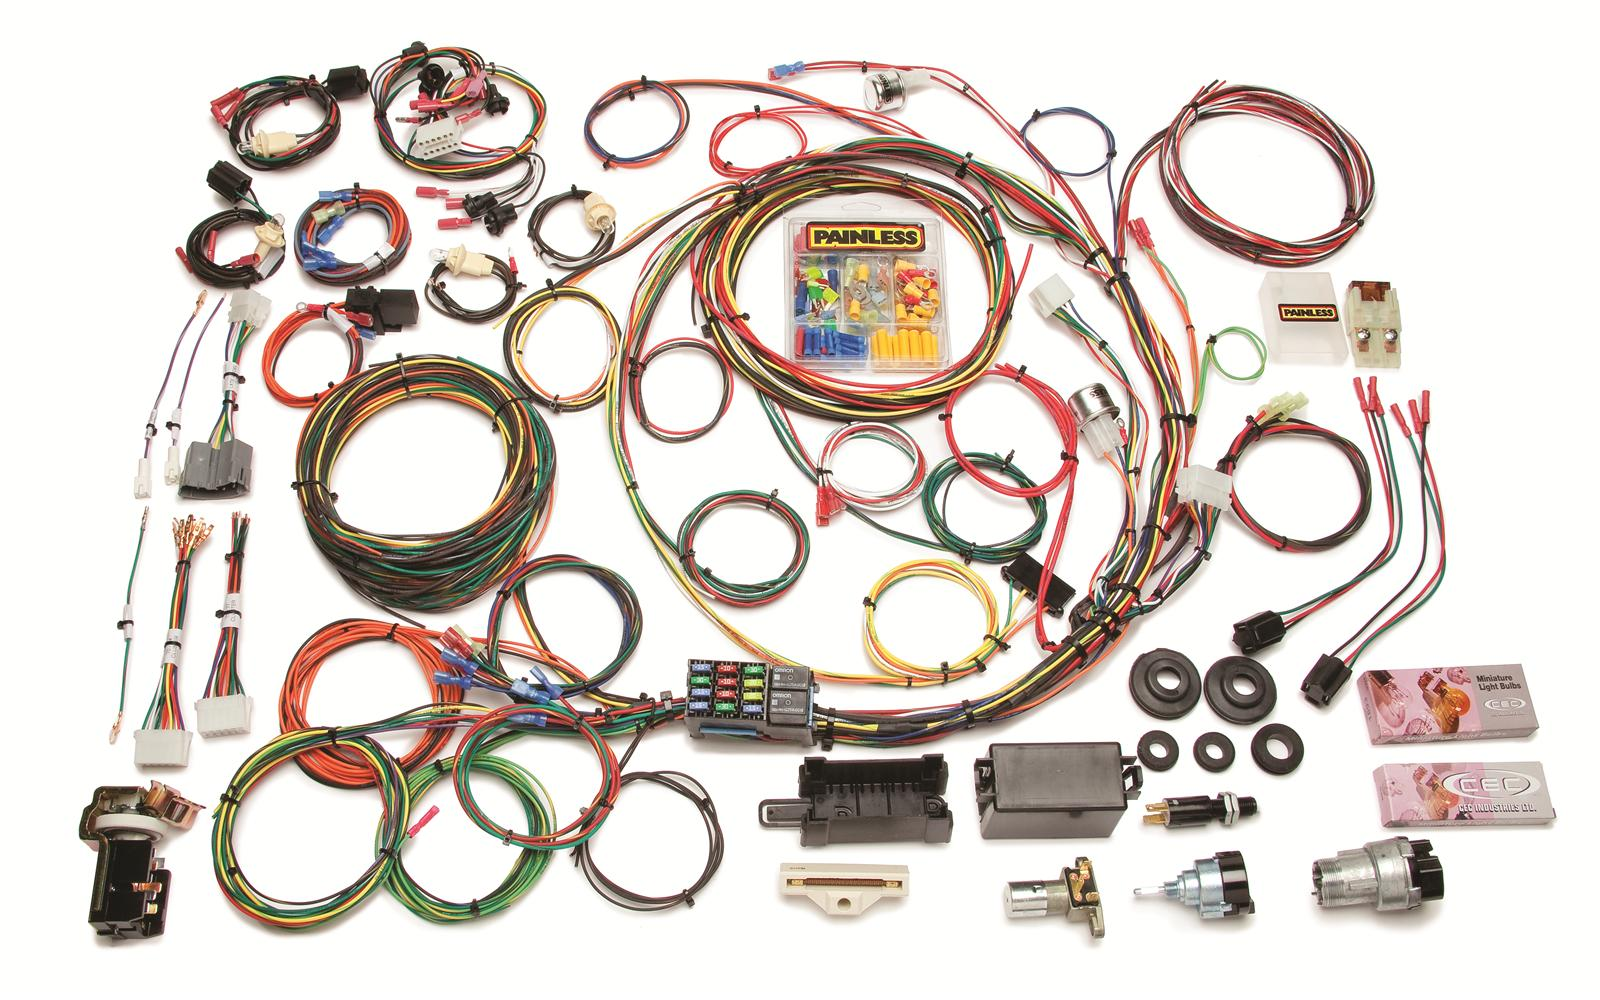 Painless Performance 21 Circuit 1967 1977 Direct Fit Ford F Series Cigar Lighter Wiring Diagram For 1957 1959 Studebaker Truck Harnesses 10118 Free Shipping On Orders Over 99 At Summit Racing